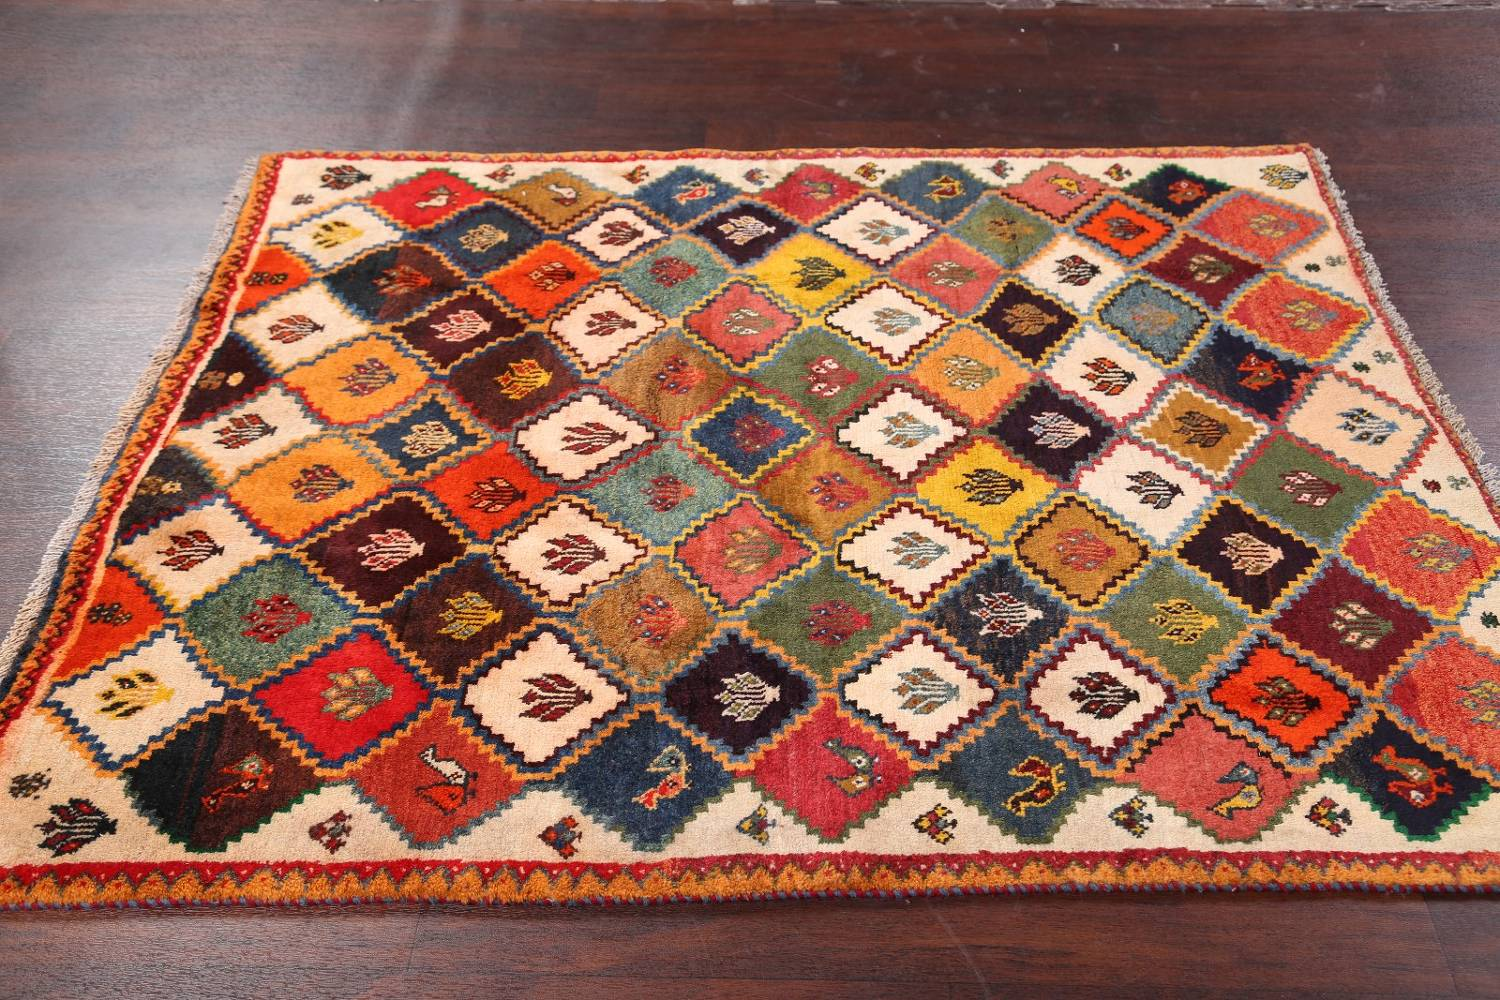 Tribal Geometric Gabbeh Shiraz Persian Hand-Knotted Area Rug Wool 5x6 image 10